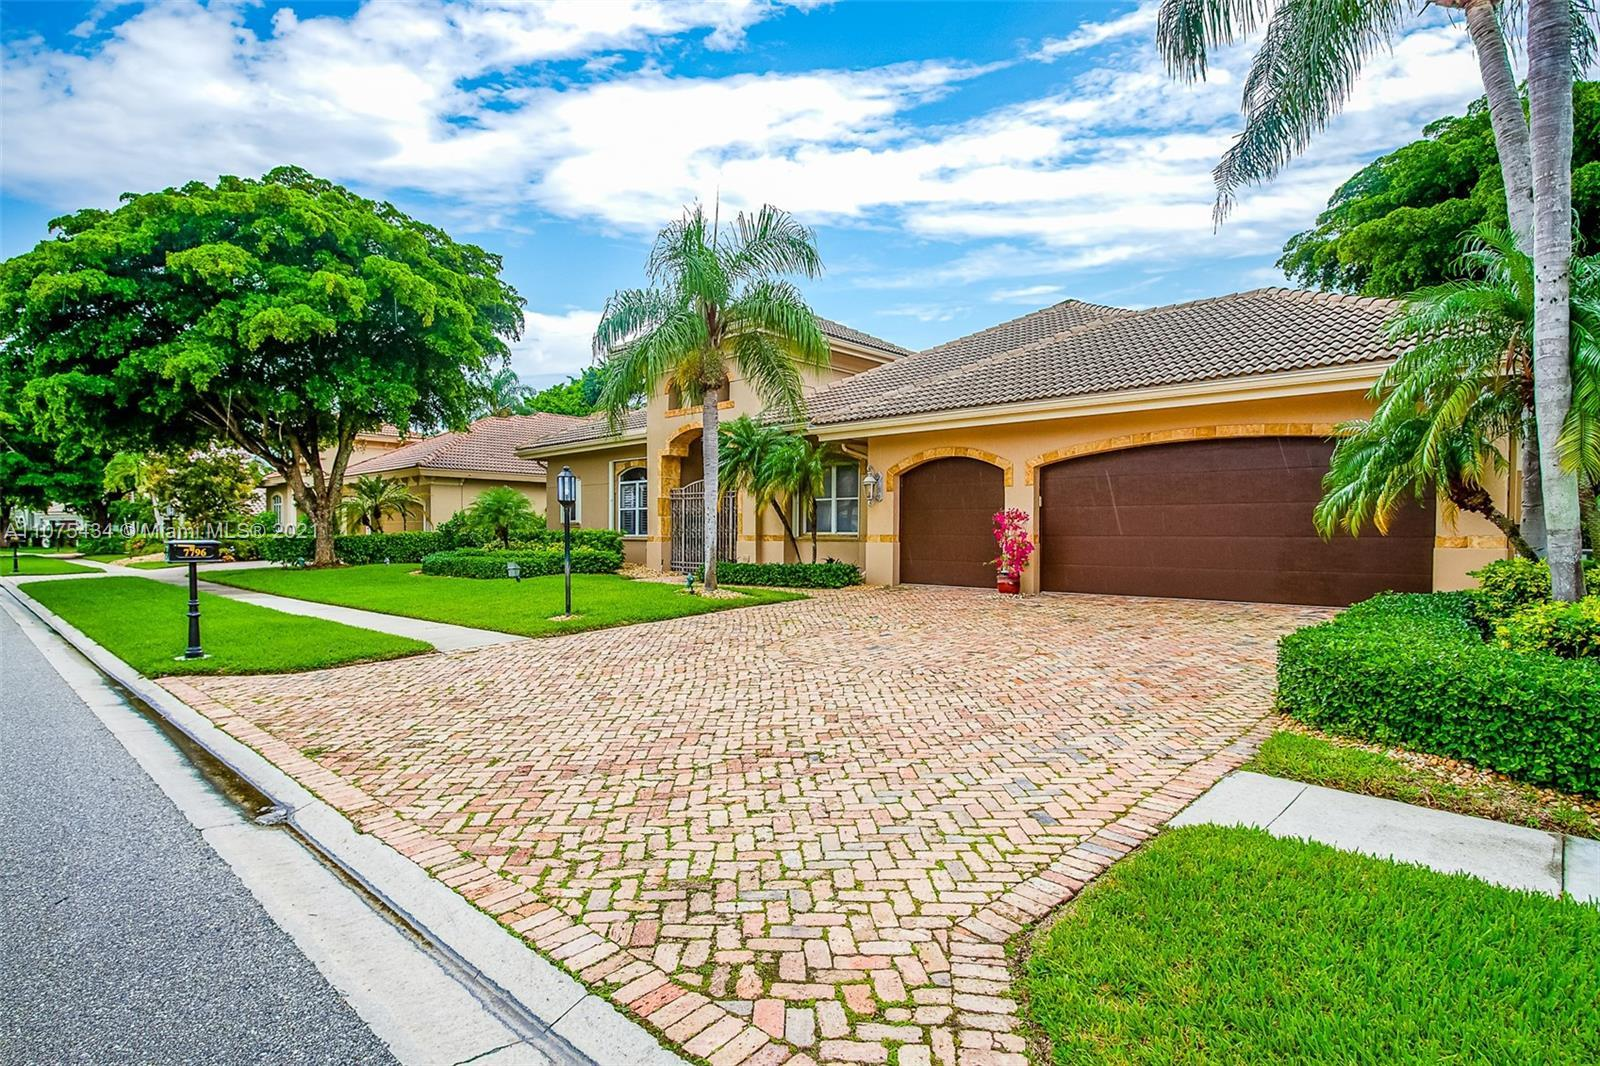 Beautiful Mediterranean Style 3 bedroom 3.5 bath Pool Home located on the 7th Fairway at Boca Grove